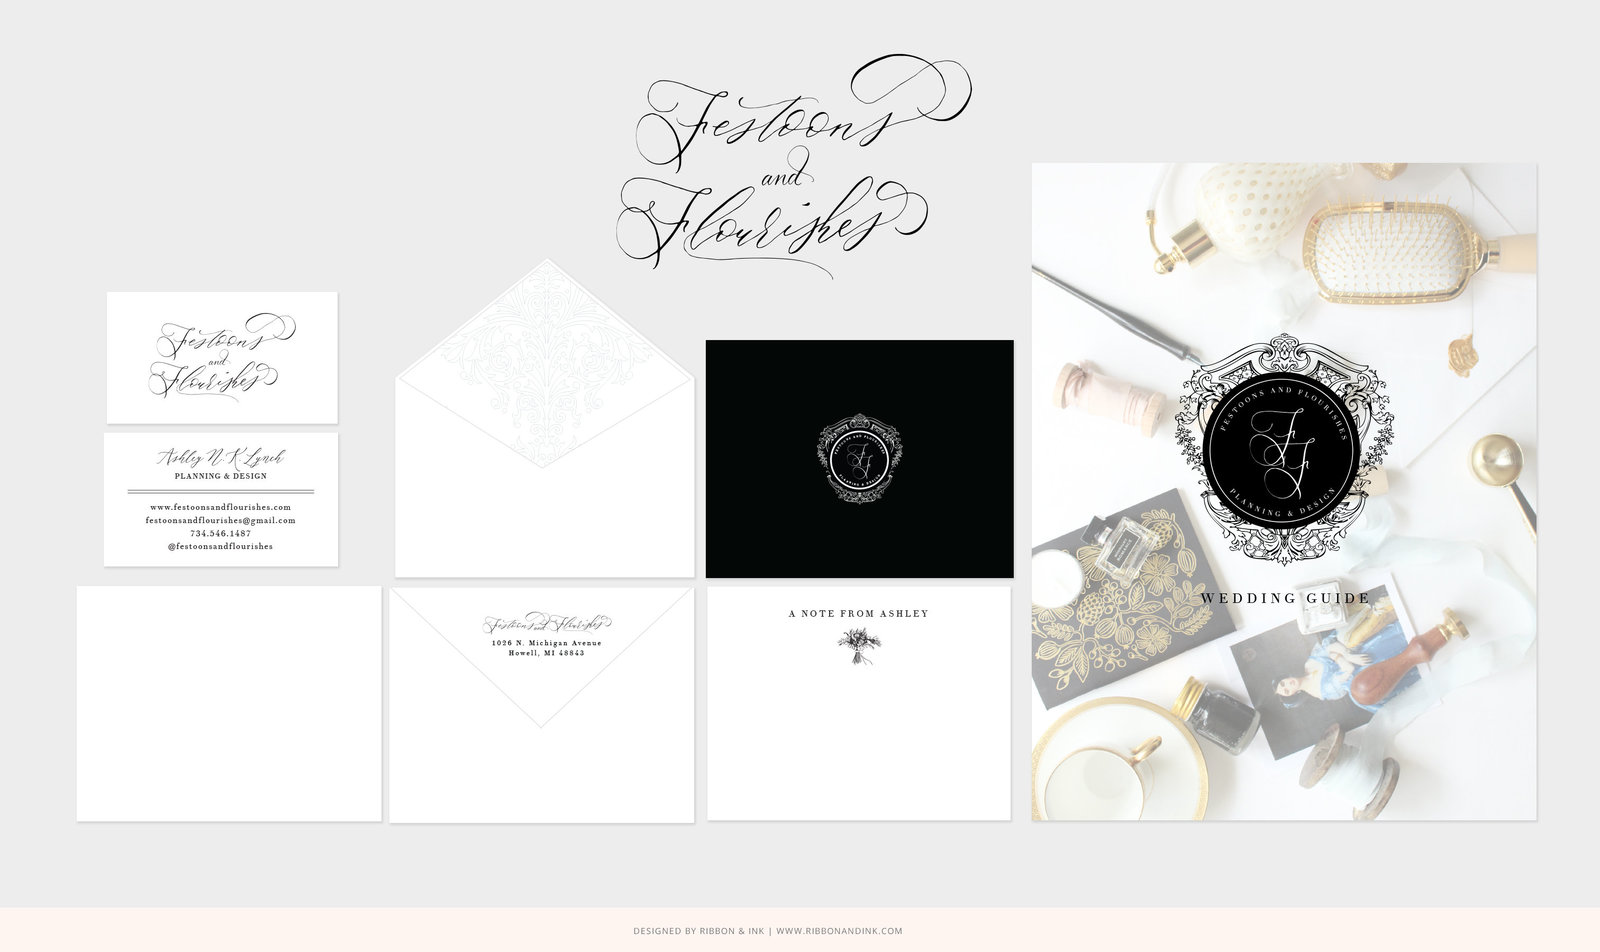 FestoonsFlourishes_Stationery_v04